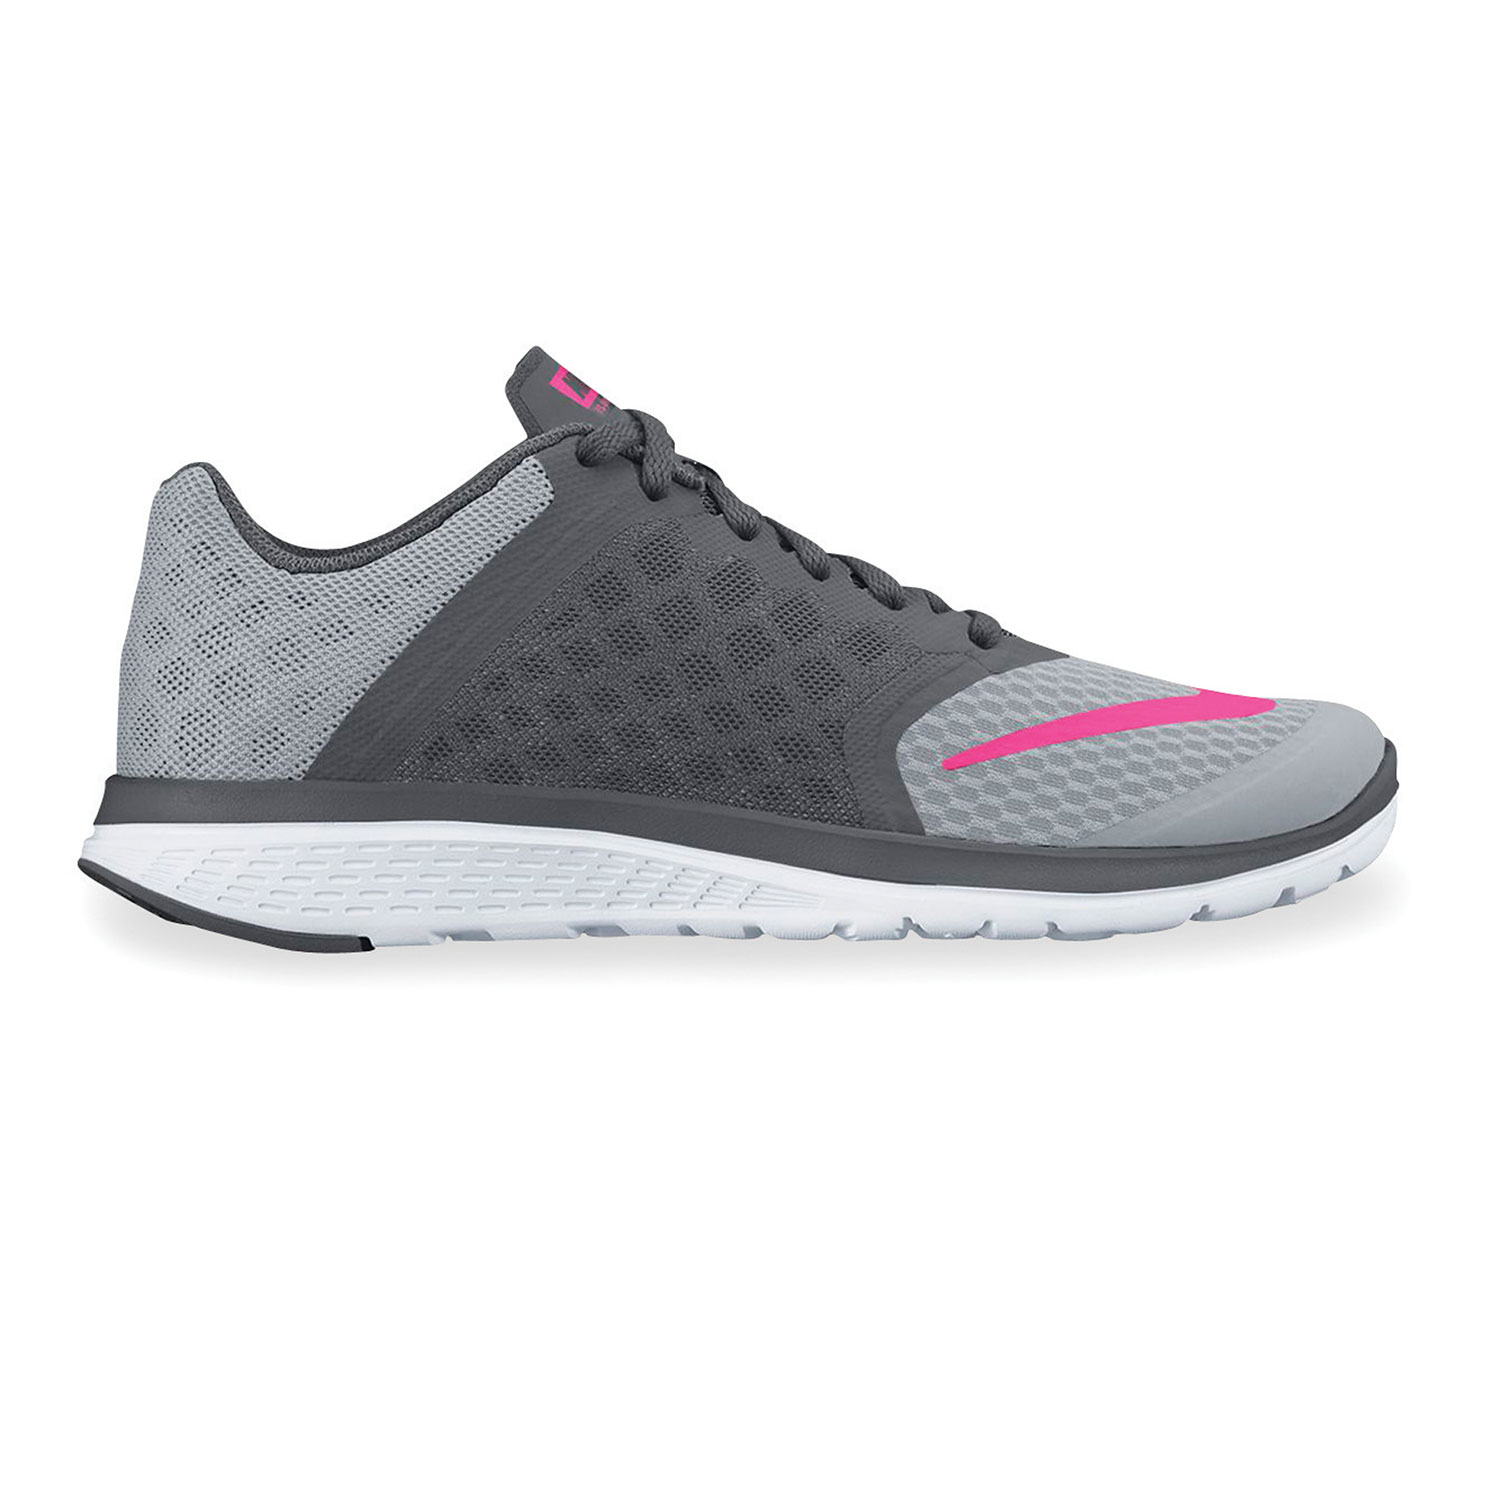 d9c34bf5f9c93 Nike FS Lite Run 3 Women s Running Shoe